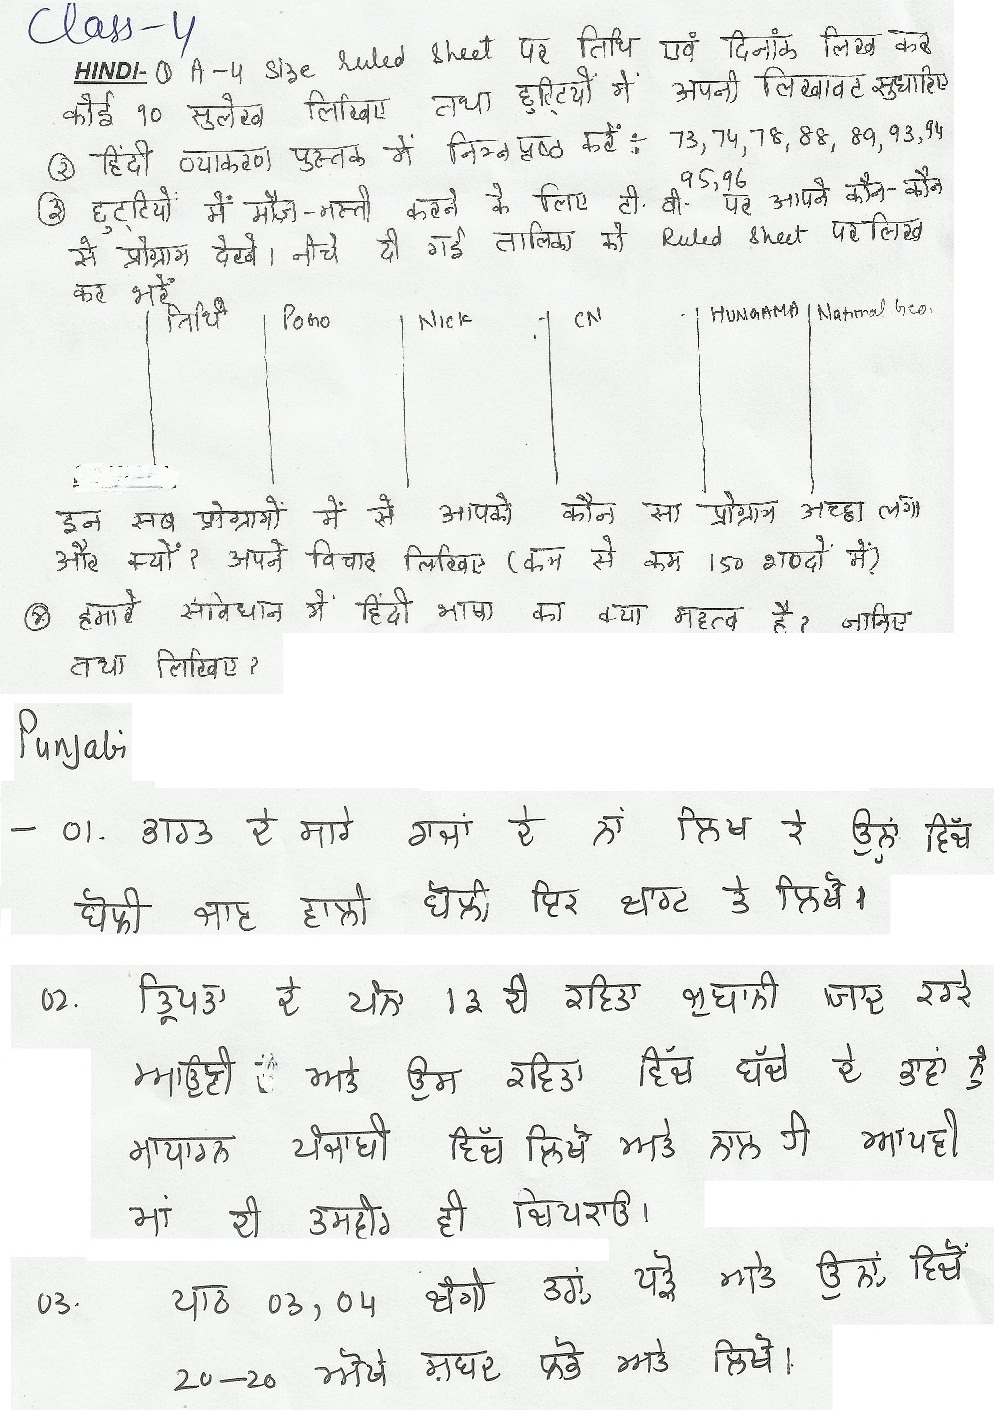 holiday homework of delhi public school bulandshahr